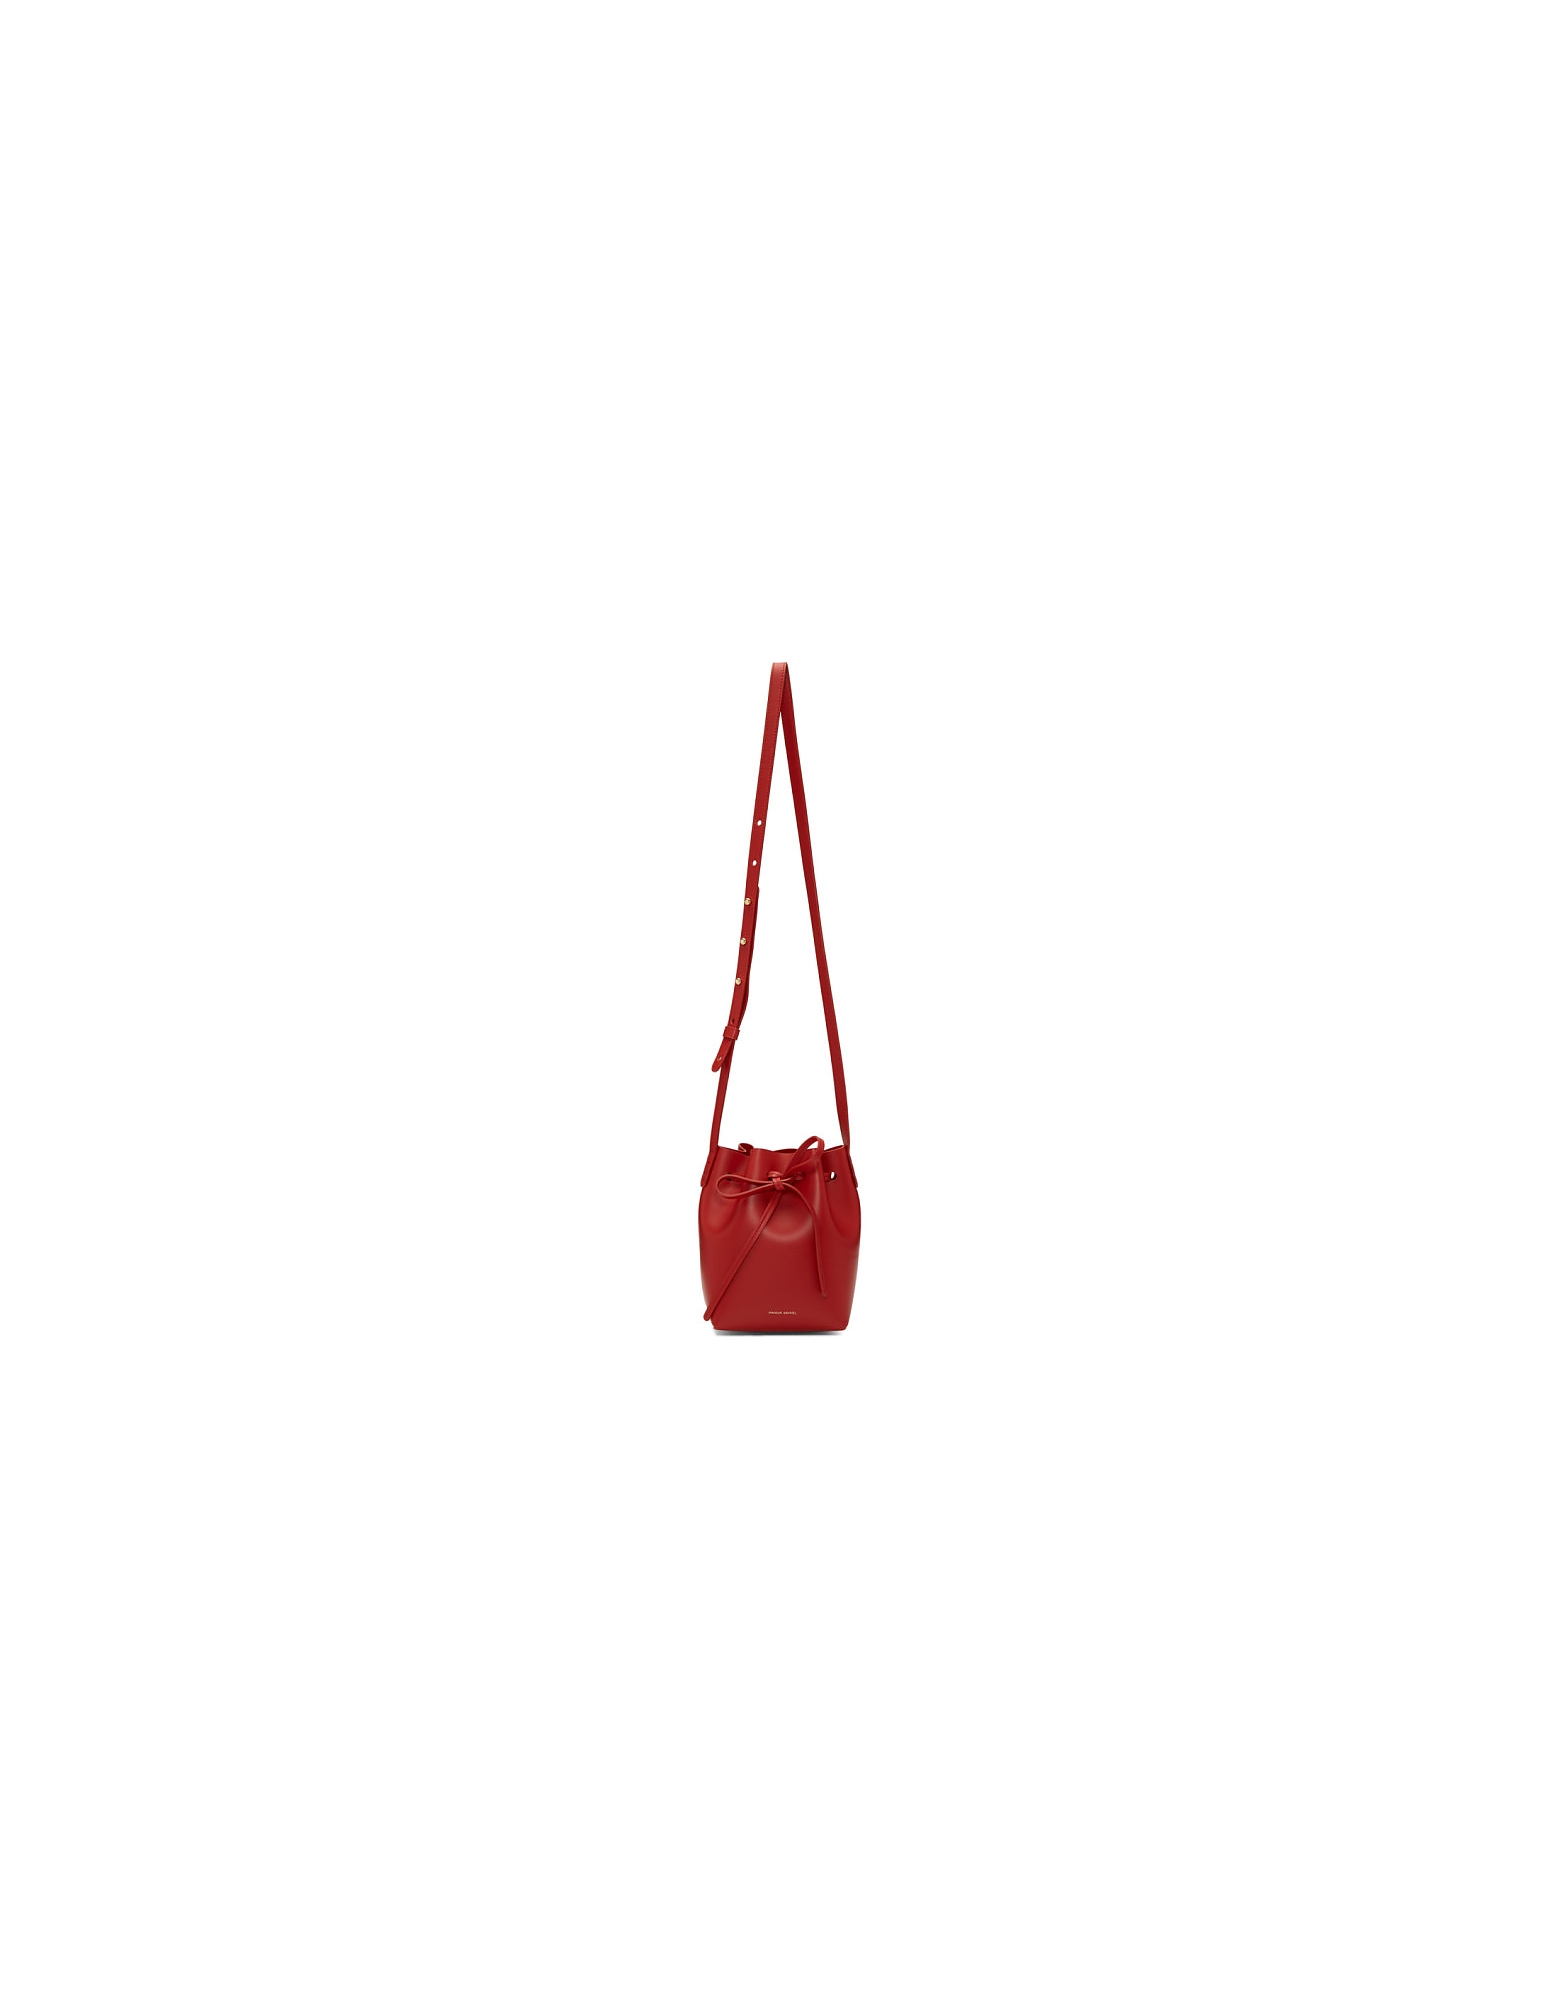 Mansur Gavriel Designer Handbags, Red Mini Mini Bucket Bag